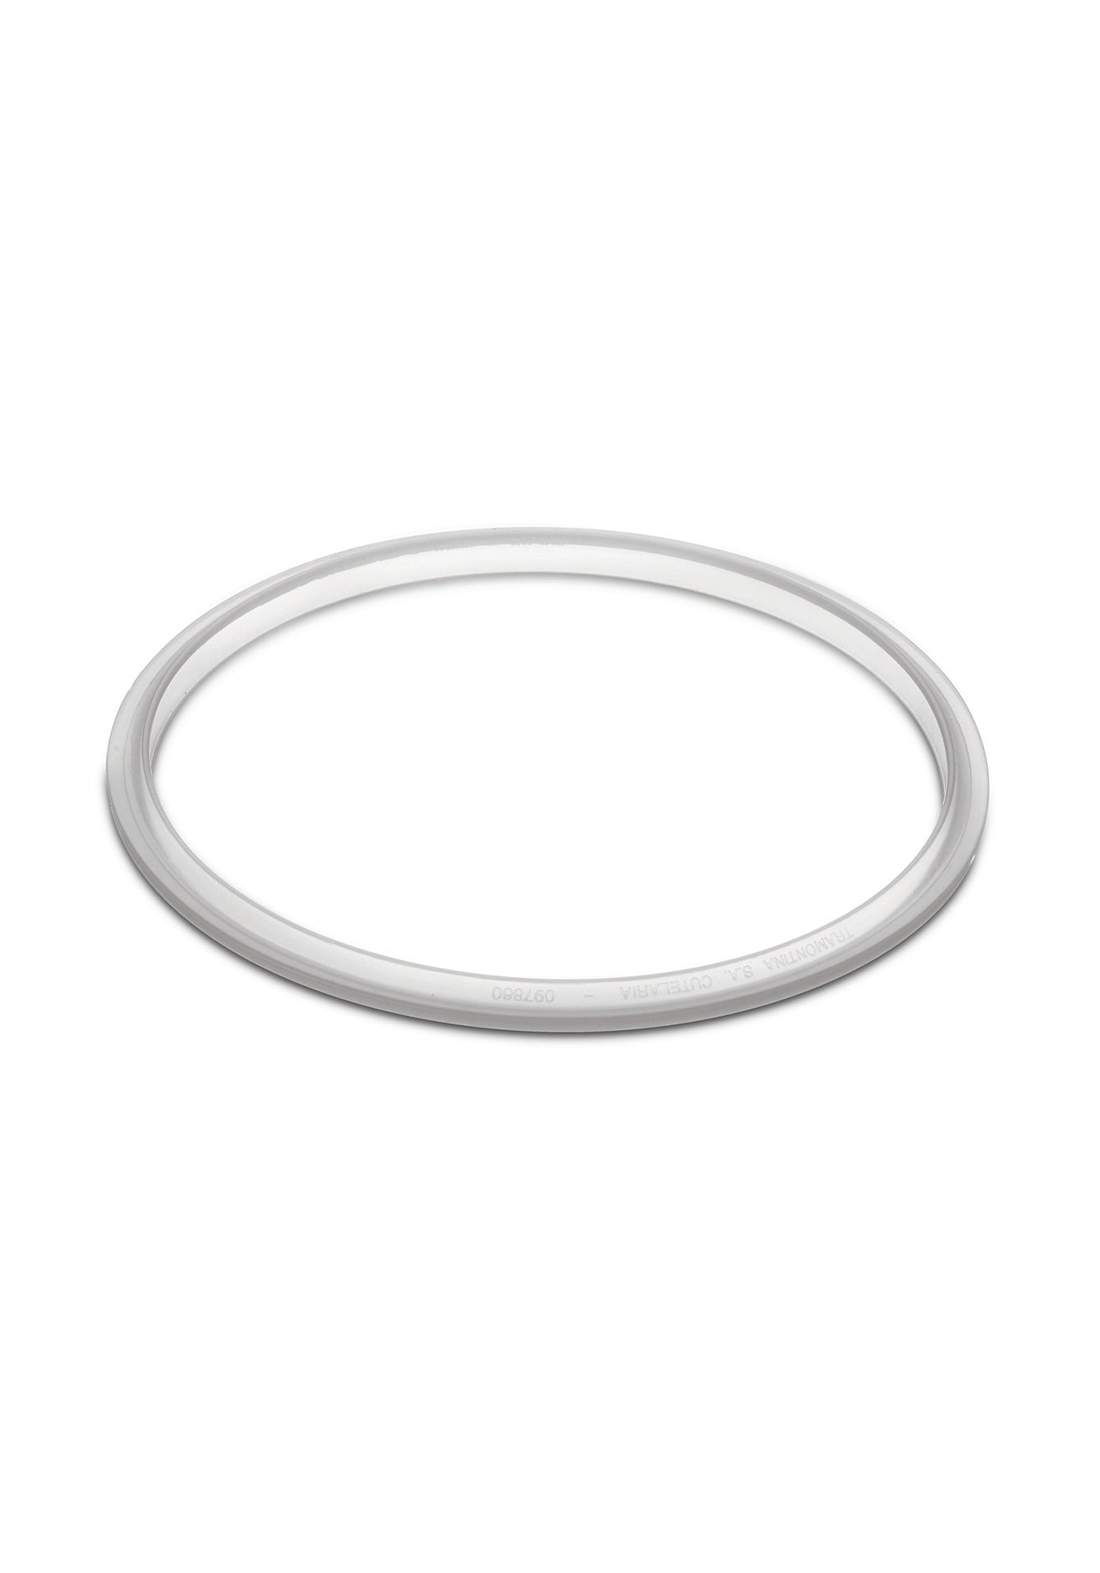 Tramontina '20579-016 Silicone Ring For Pressure Cooker 24 cm  White واشر لقدر الضغط